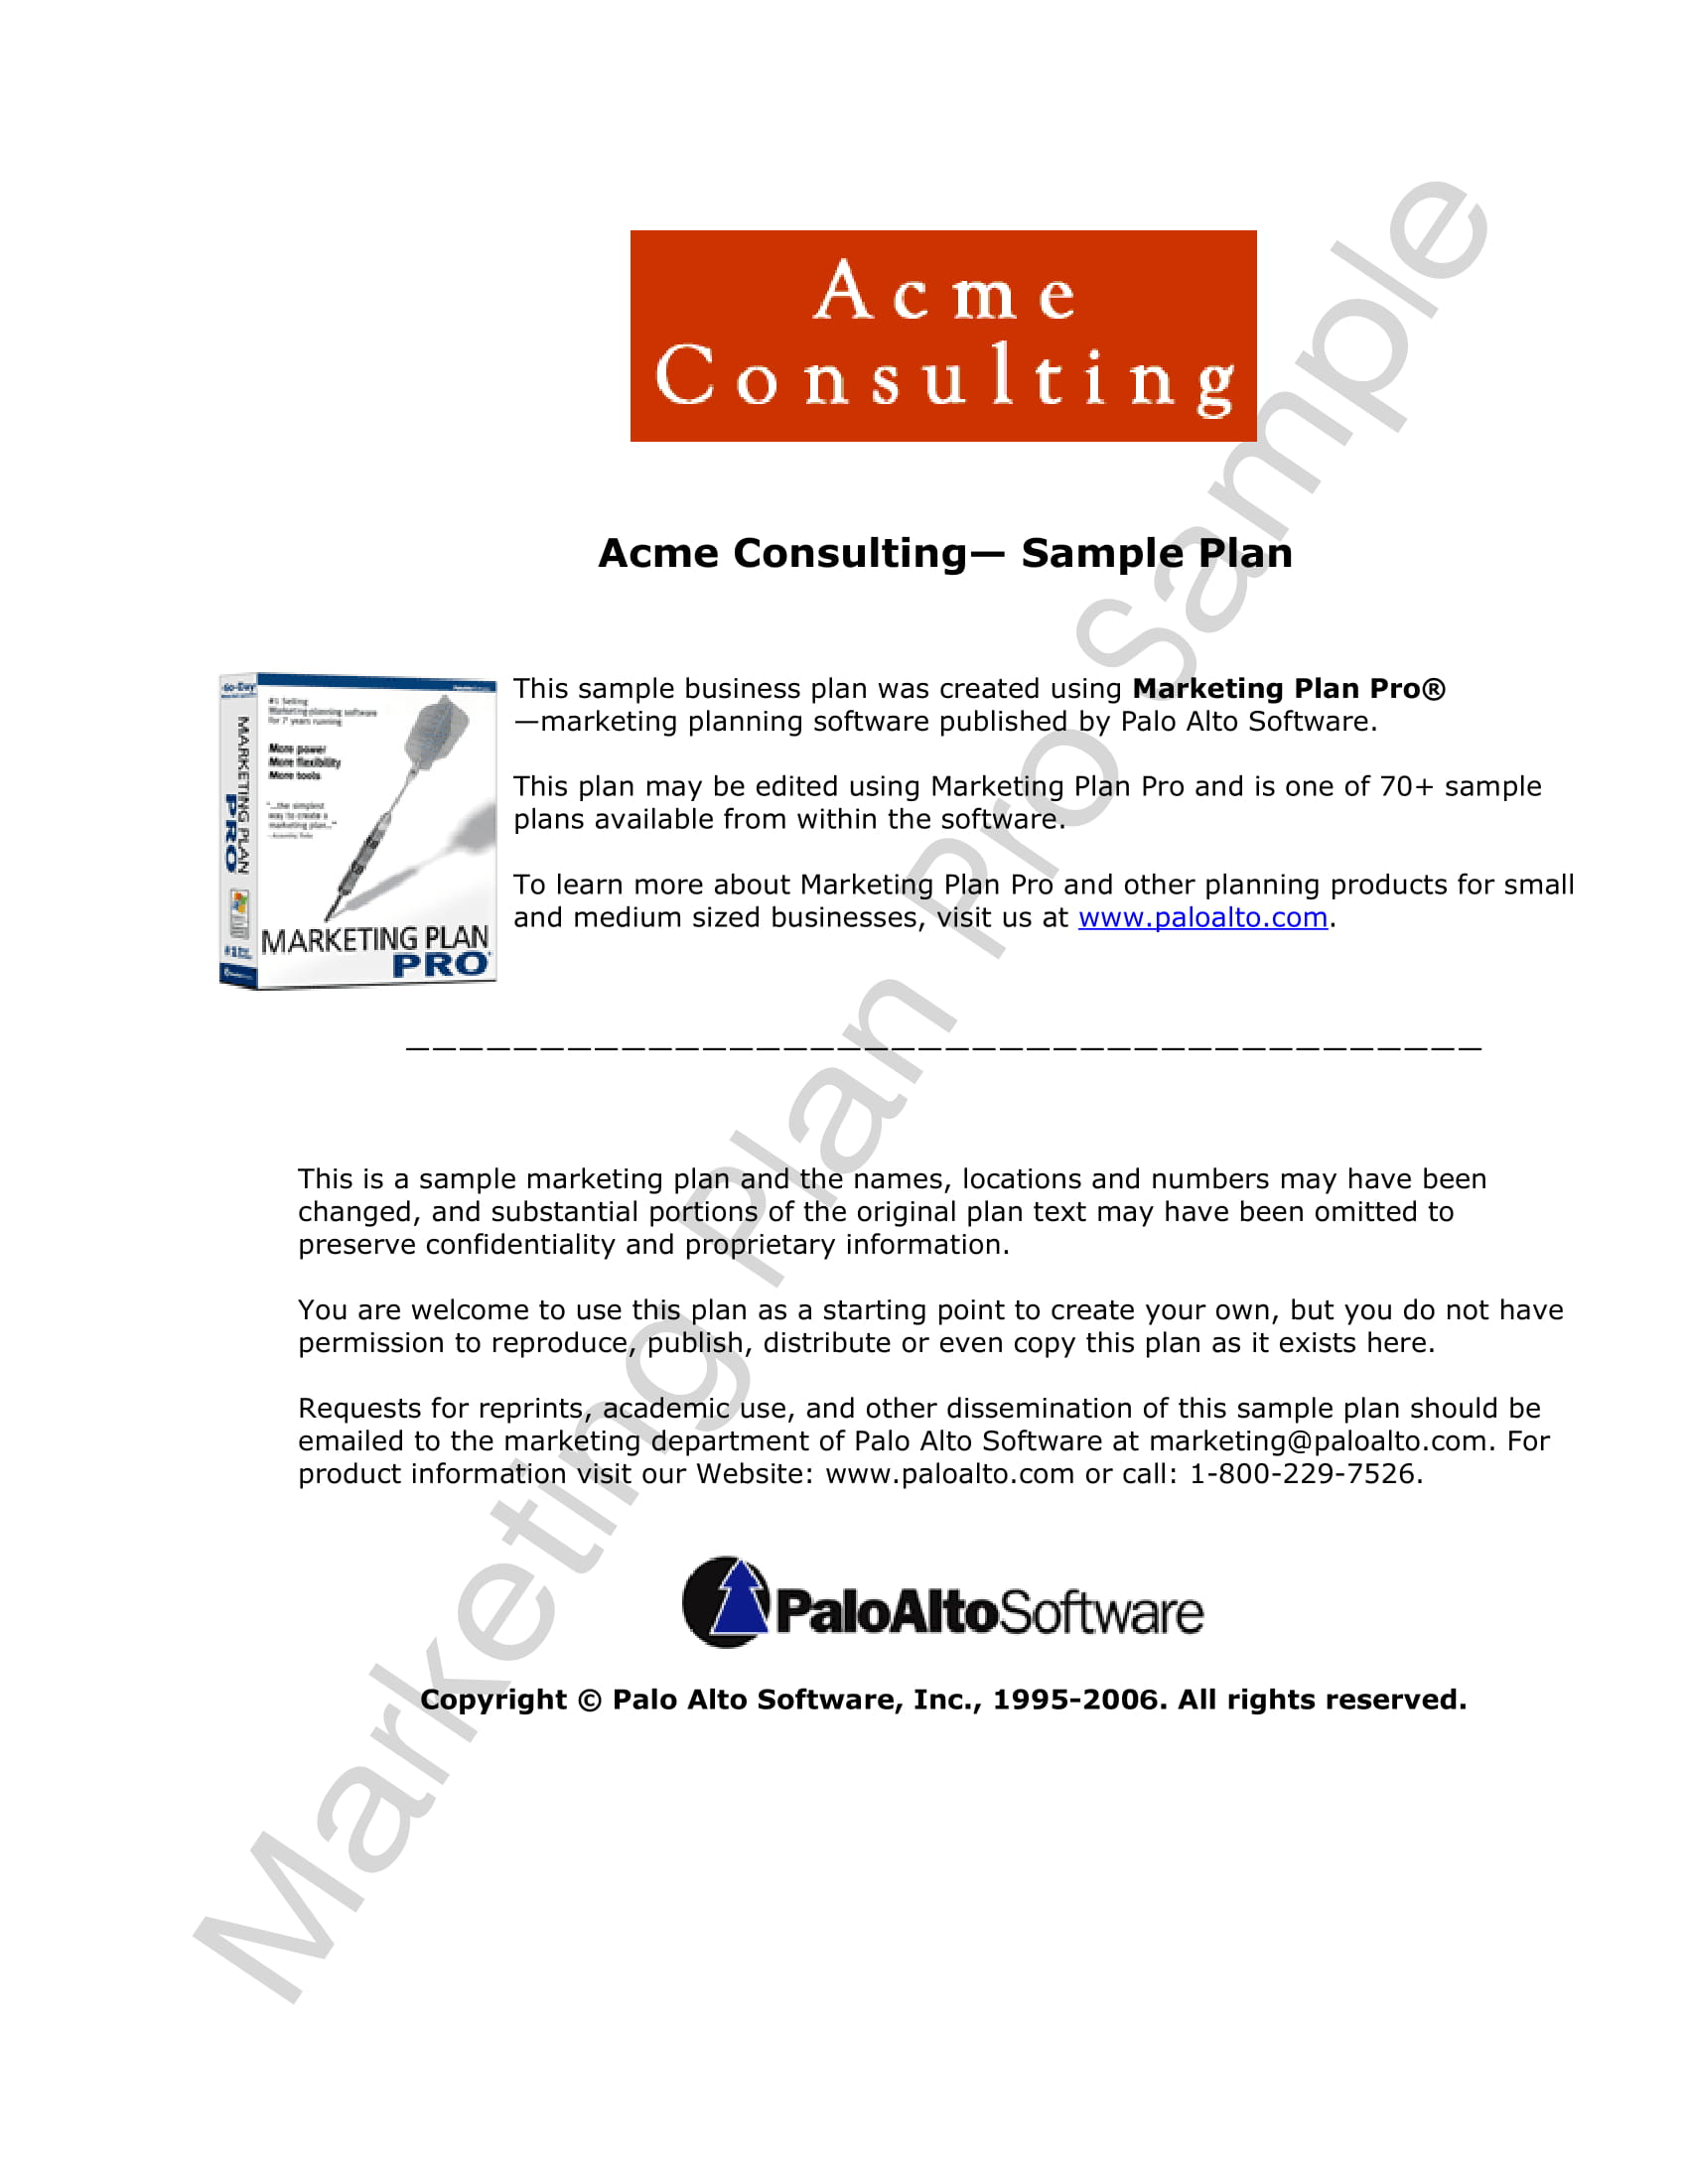 acme consulting mpp live